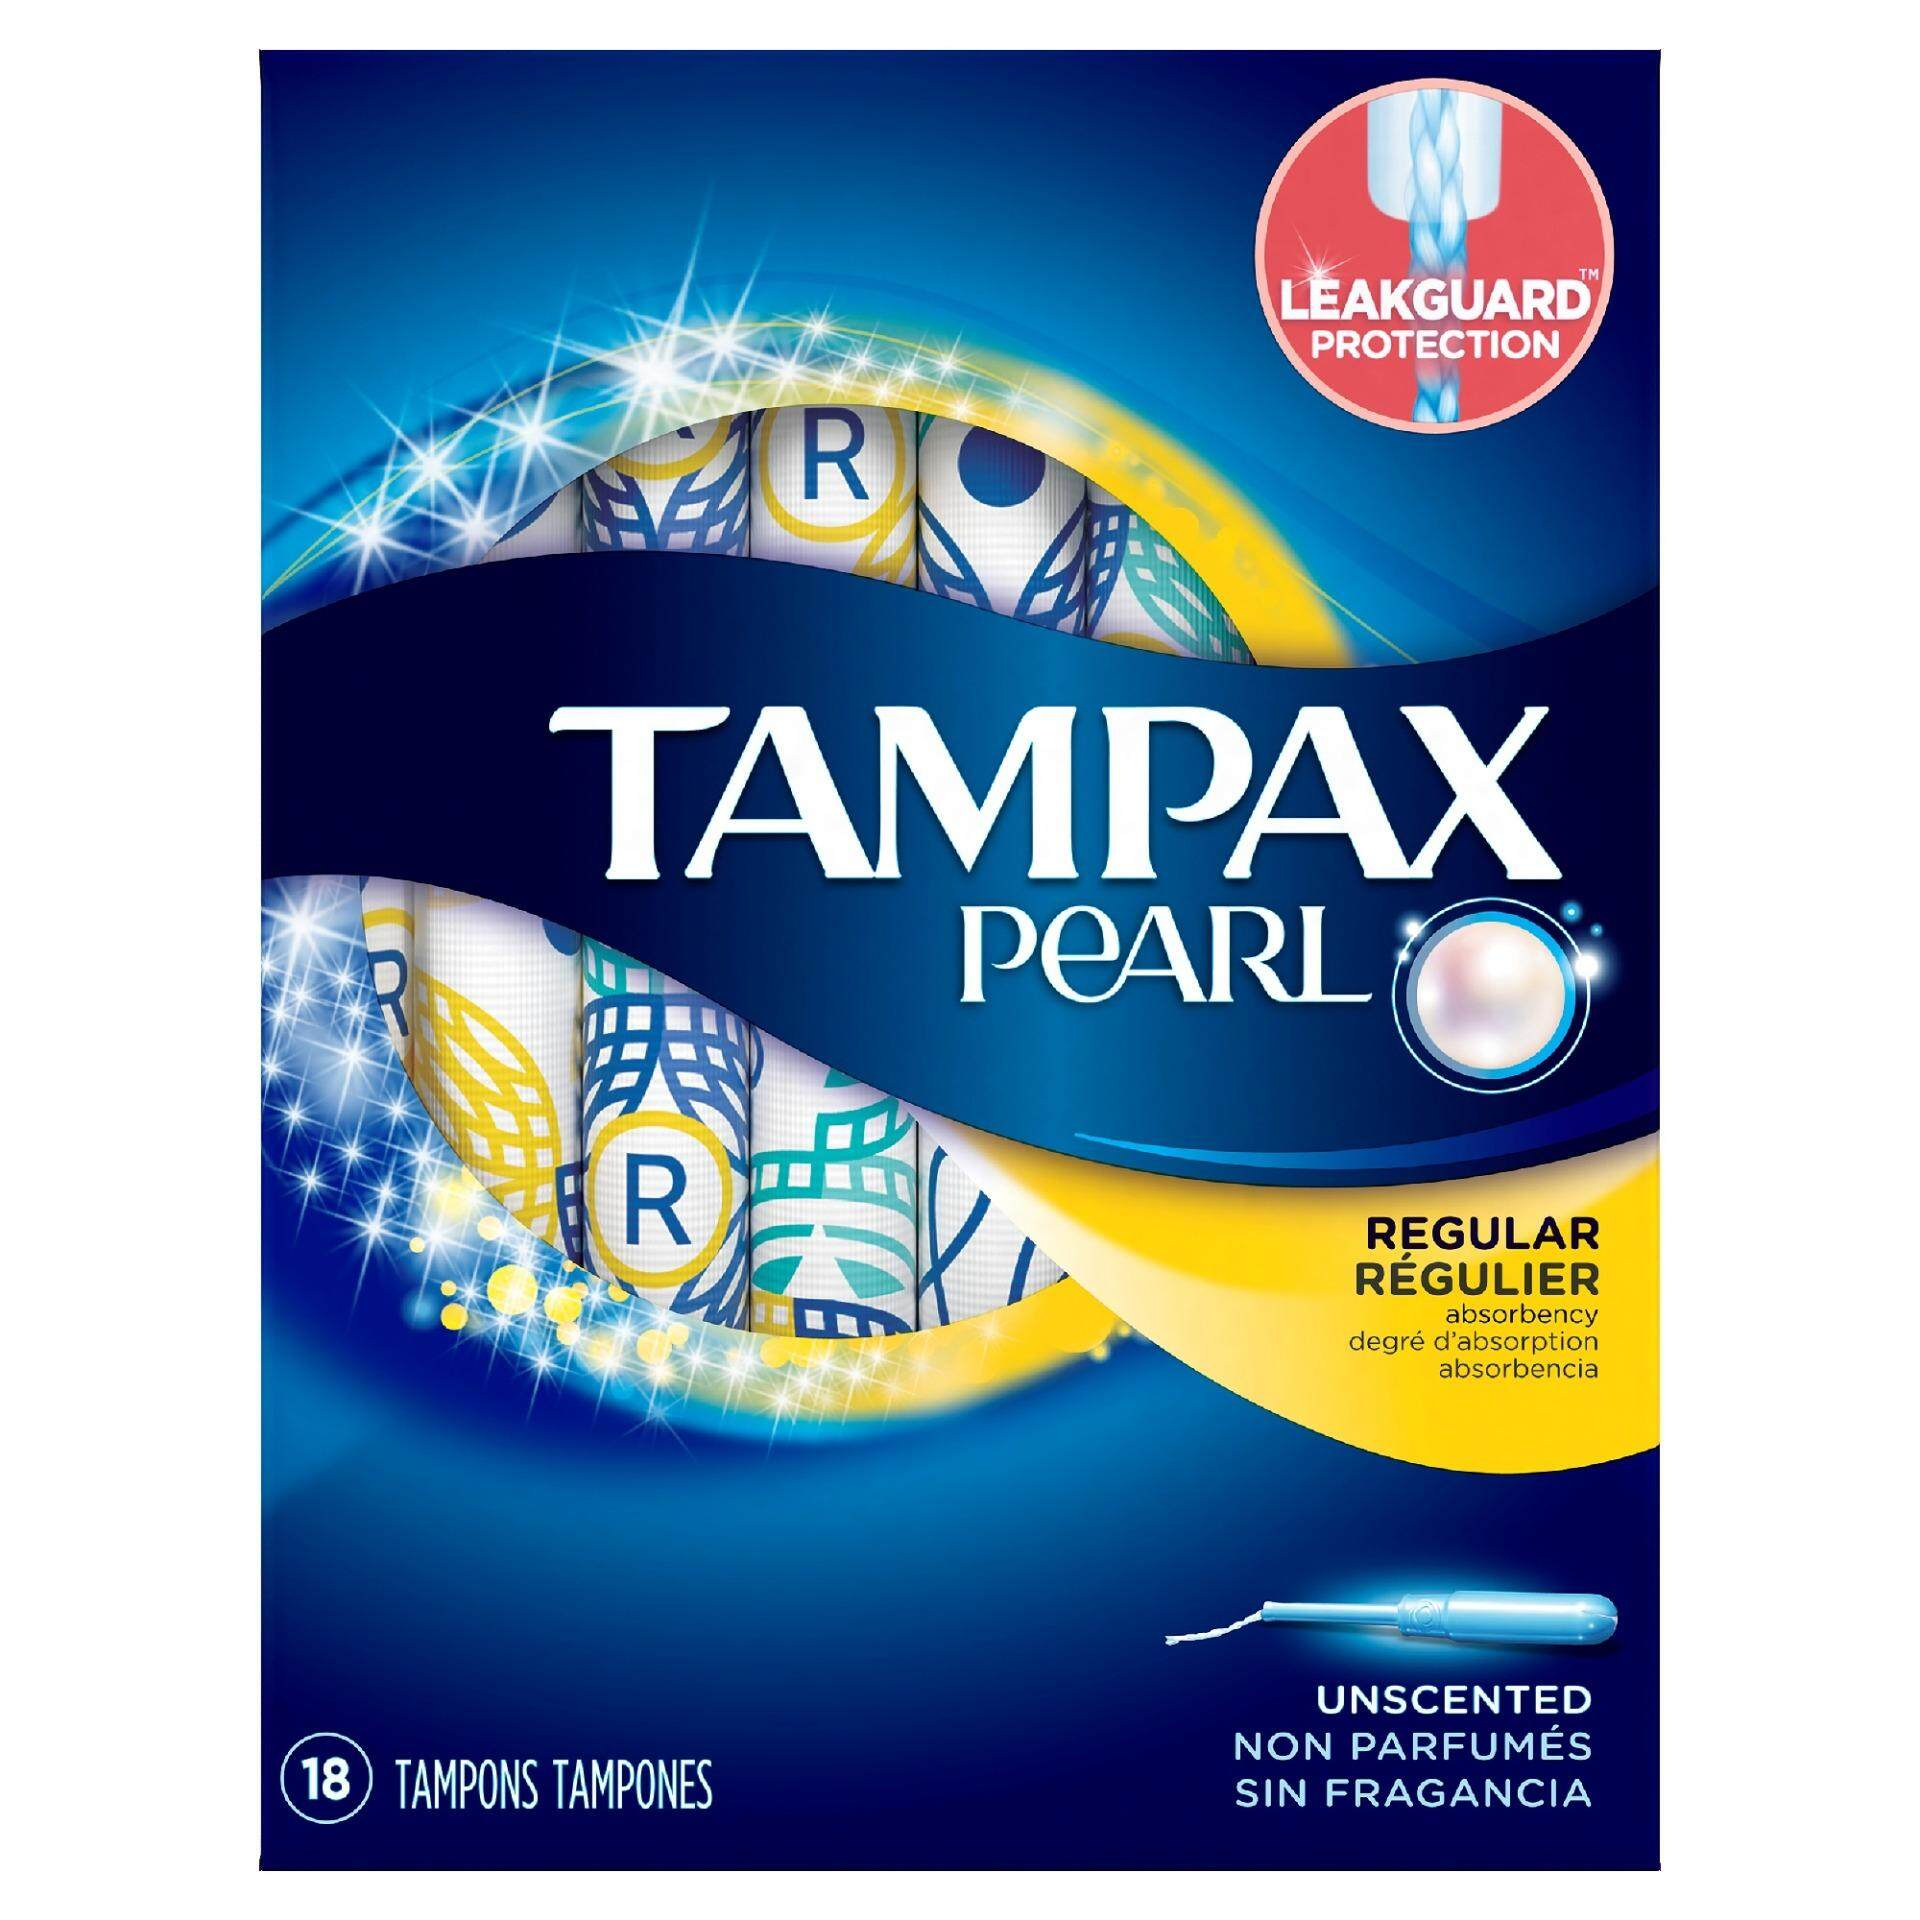 Tampax Pocket Pearl Regular Plastic Unscented Tampons 18 Ct By P&g Official Store.